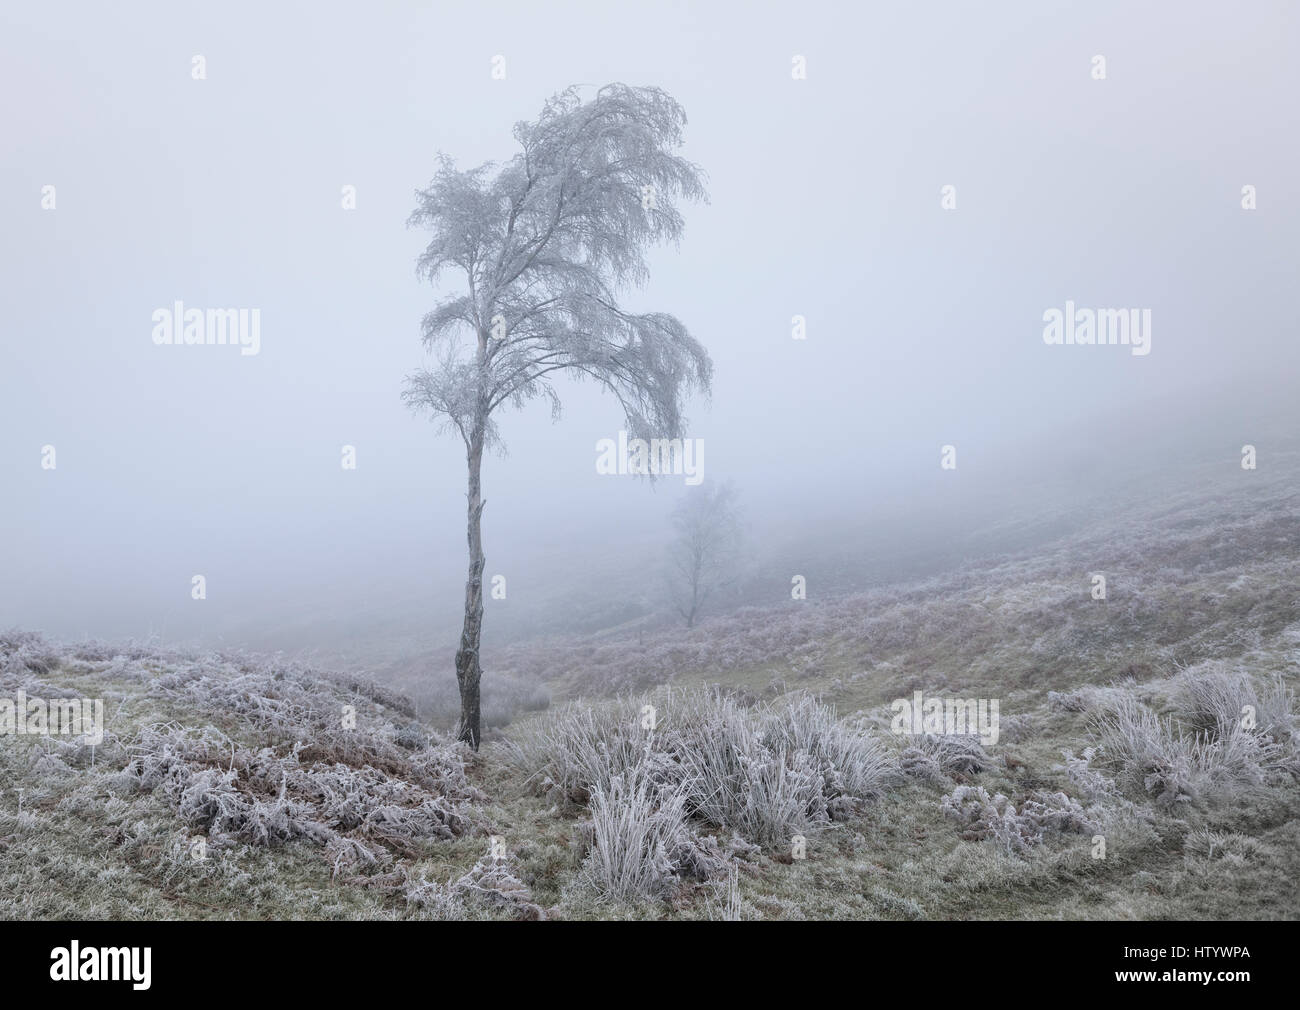 Hoar frost covered birch tree in winter landscape of freezing mist or fog - Stock Image